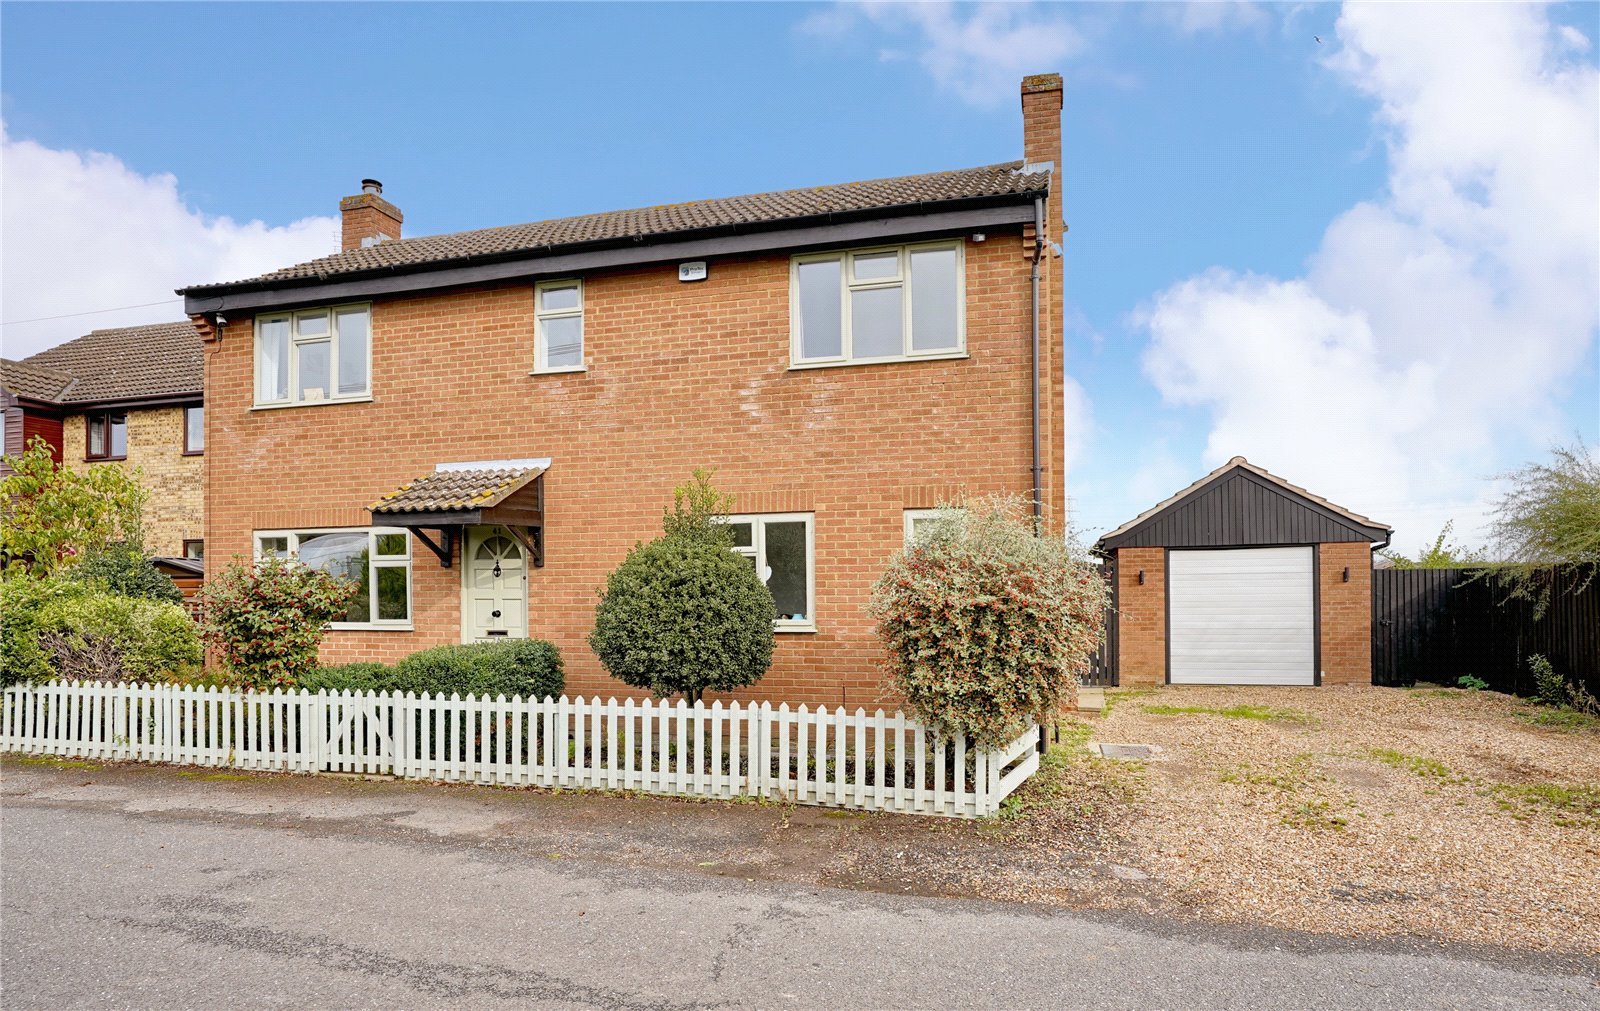 4 bed house for sale in St. Neots, PE19 5JA - Property Image 1